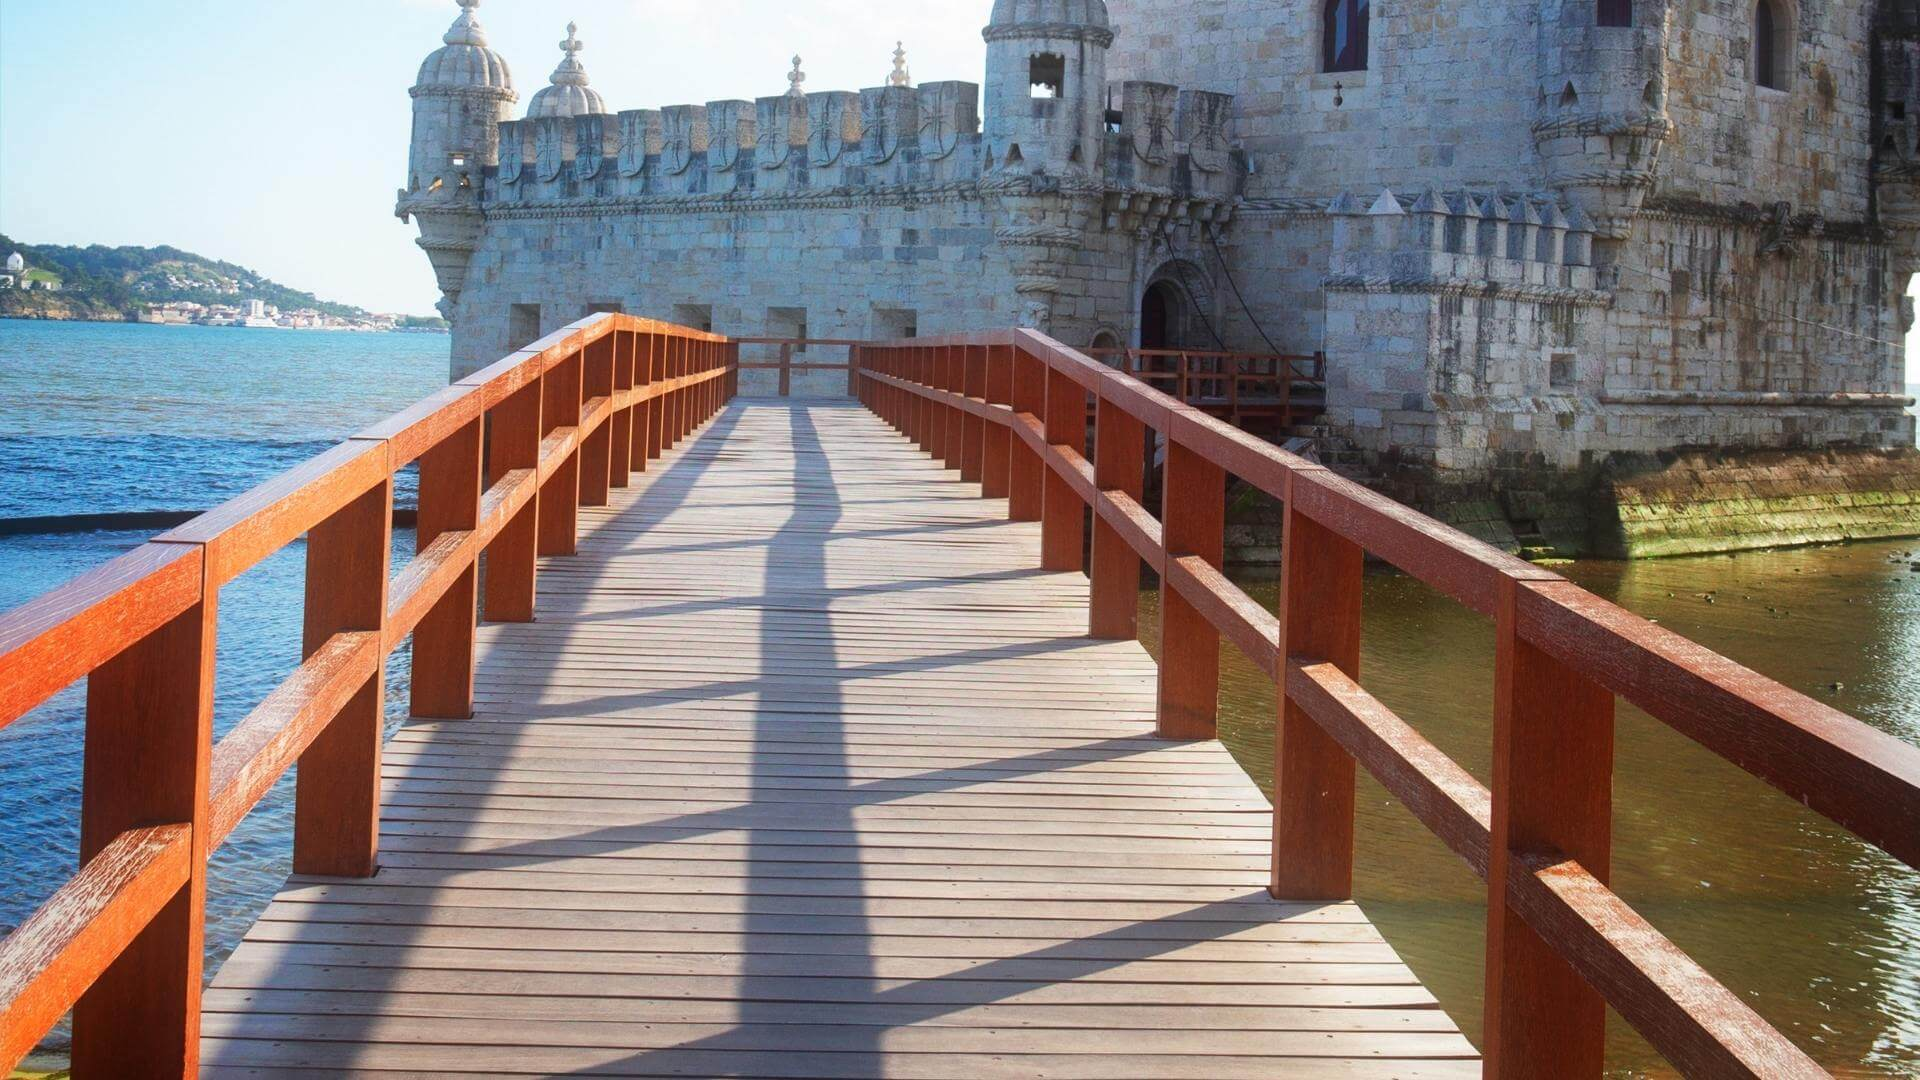 Portugal: How to Prepare for 2022 E-Invoicing Changes